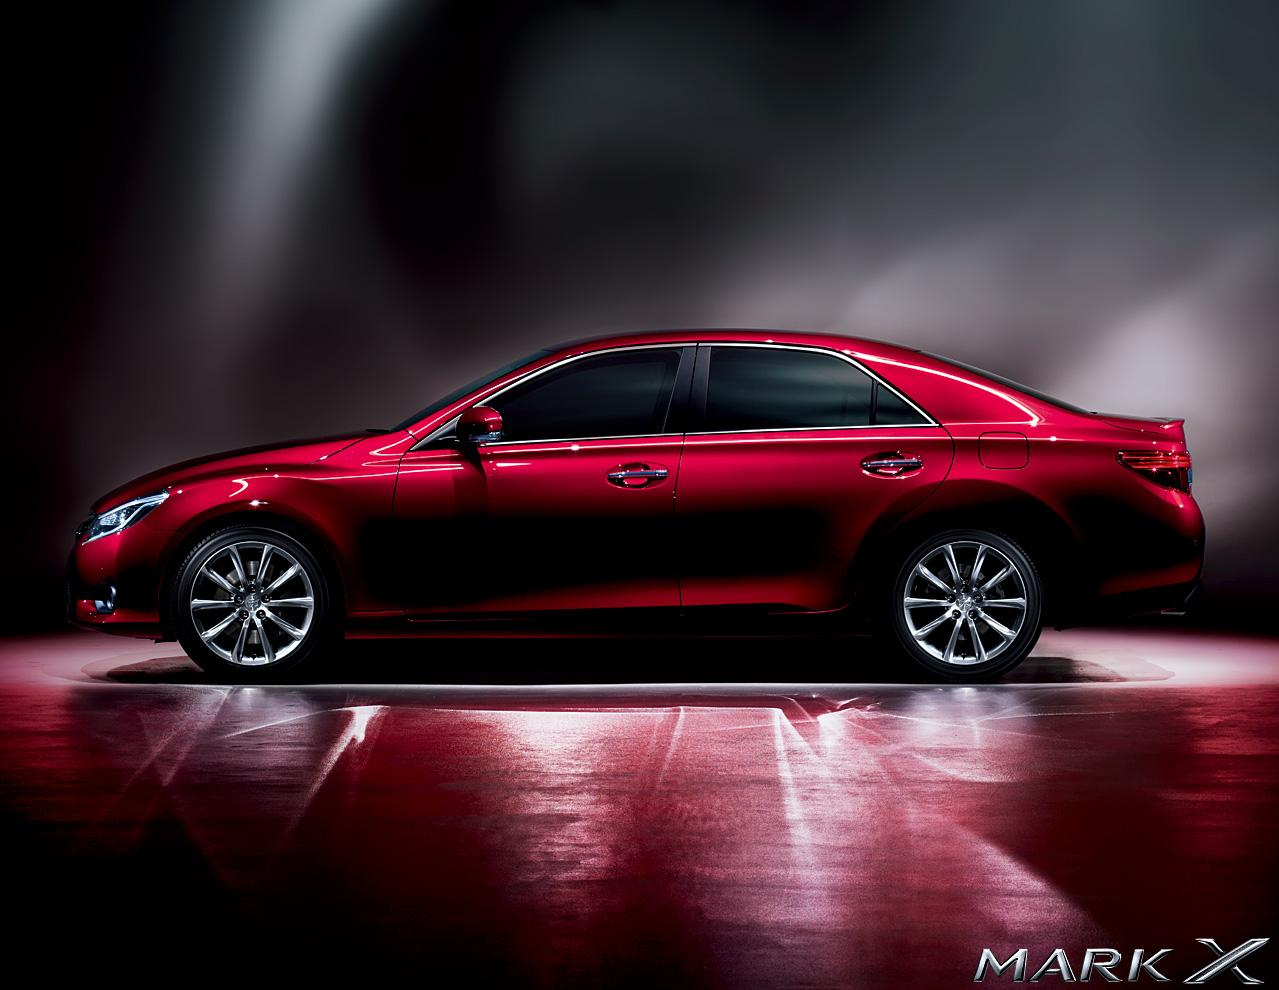 Brand New Toyota Mark X Picture Wallpaper Photo Of New